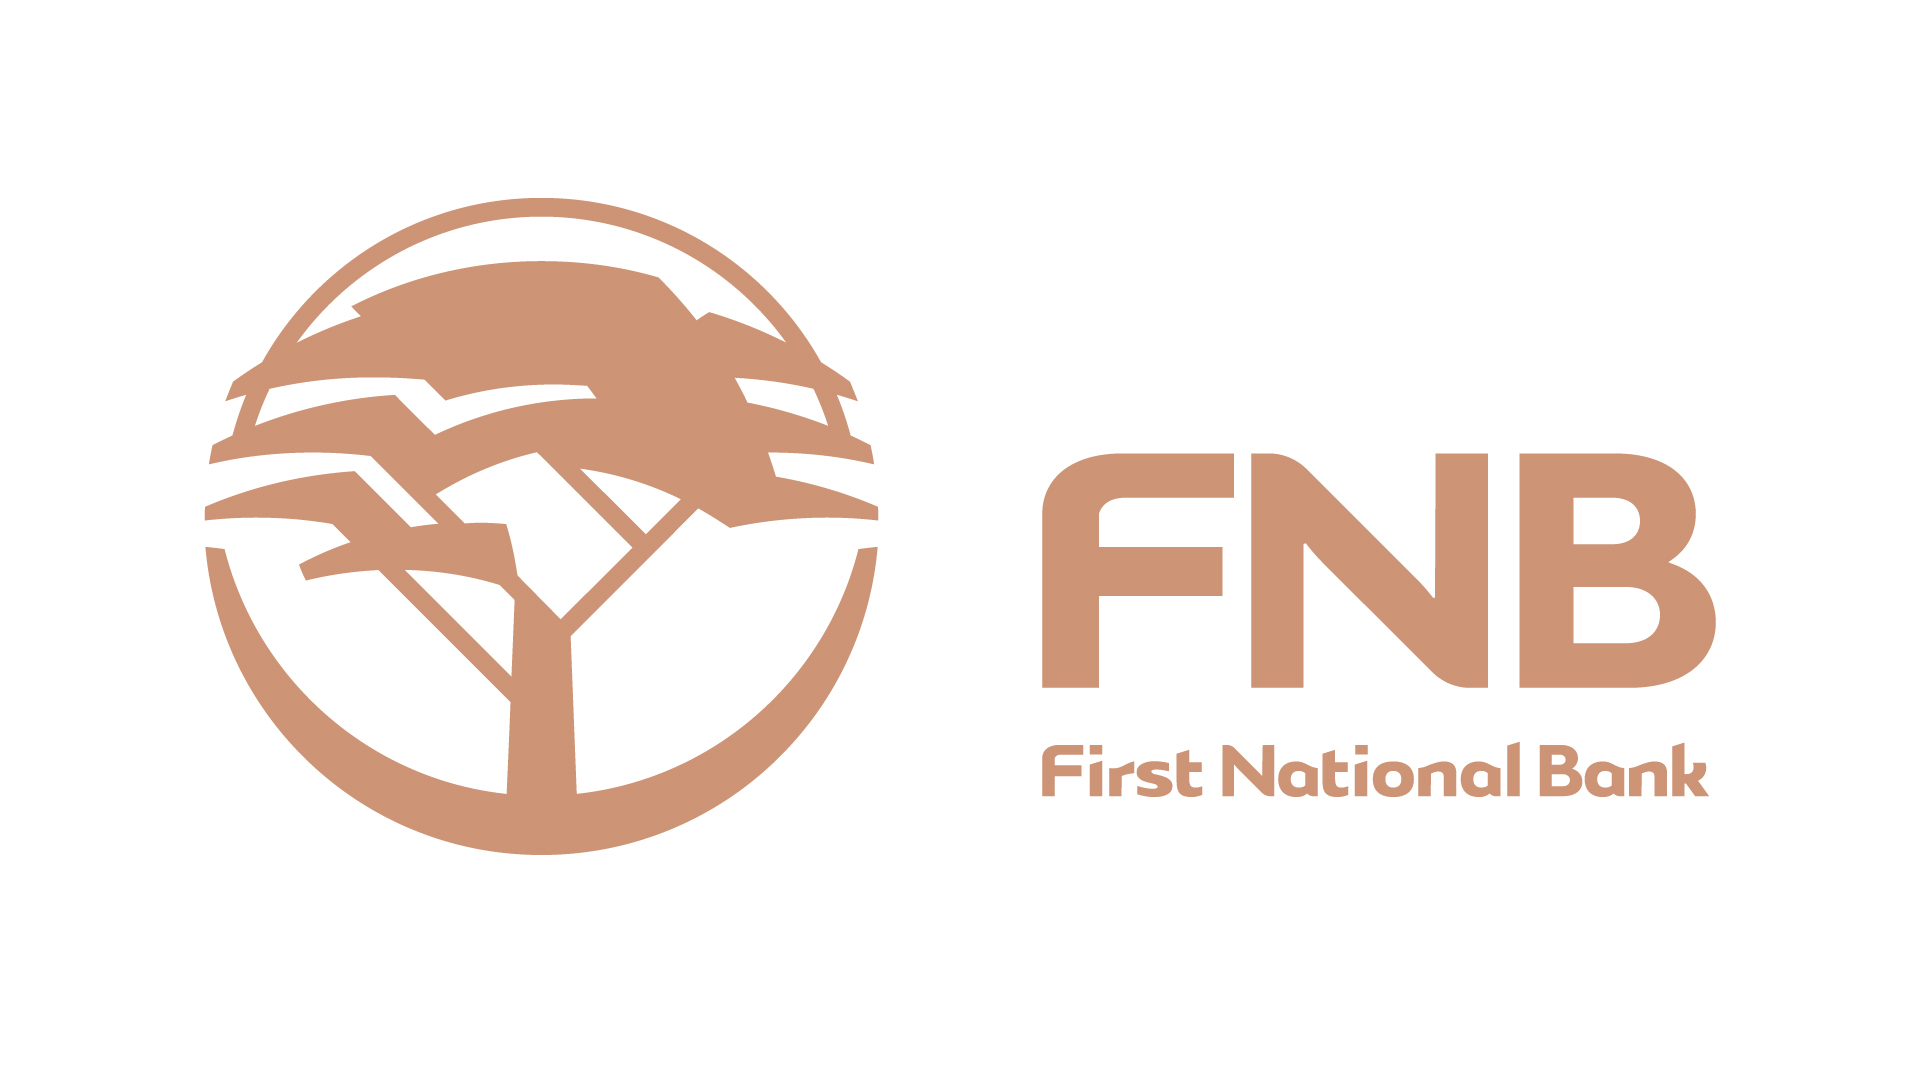 Fnb forex business hours